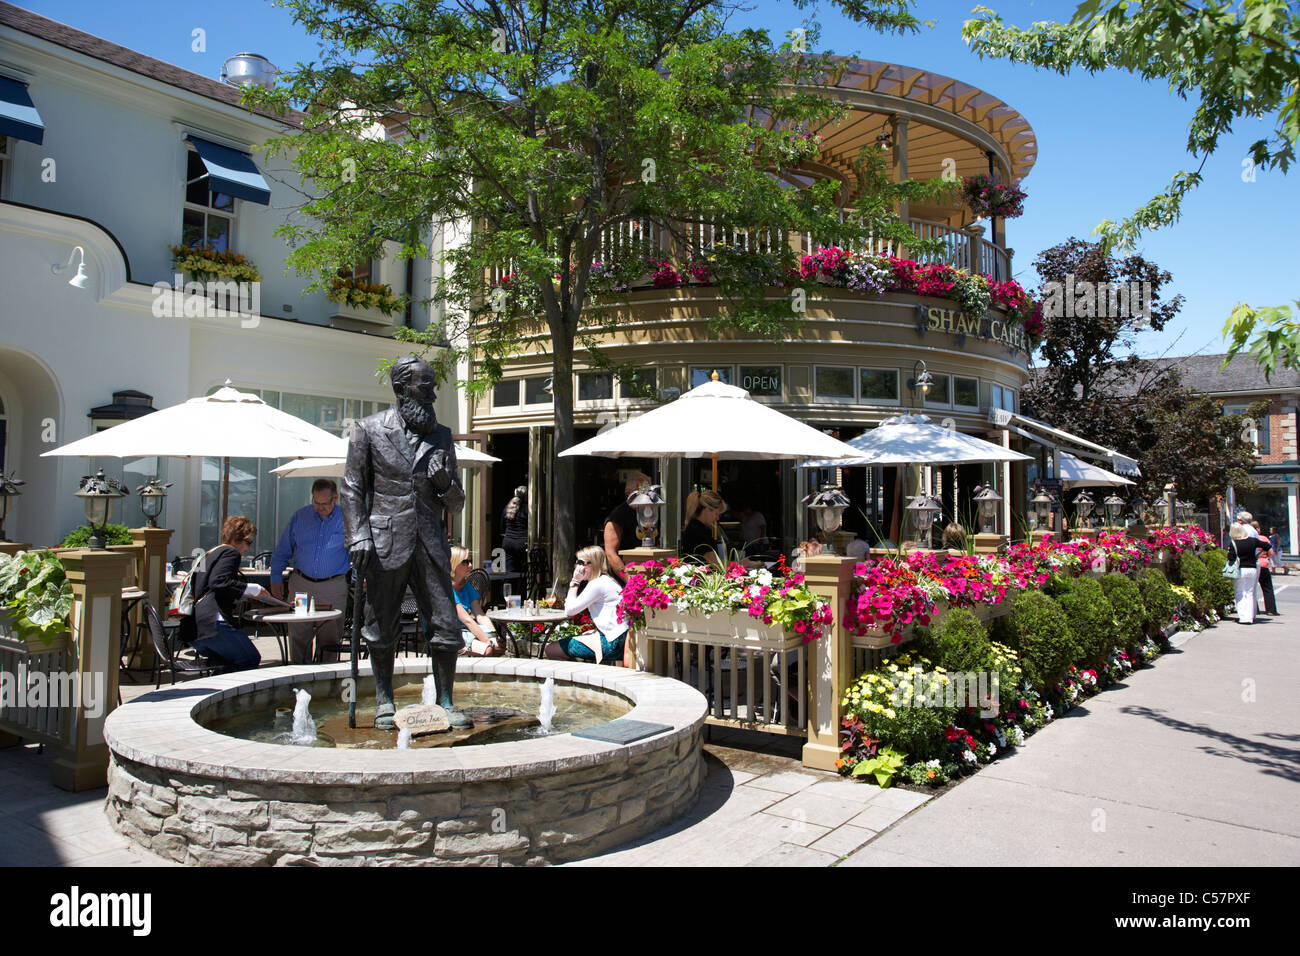 the shaw cafe and wine bar patio and statue niagara-on-the-lake ontario canada - Stock Image